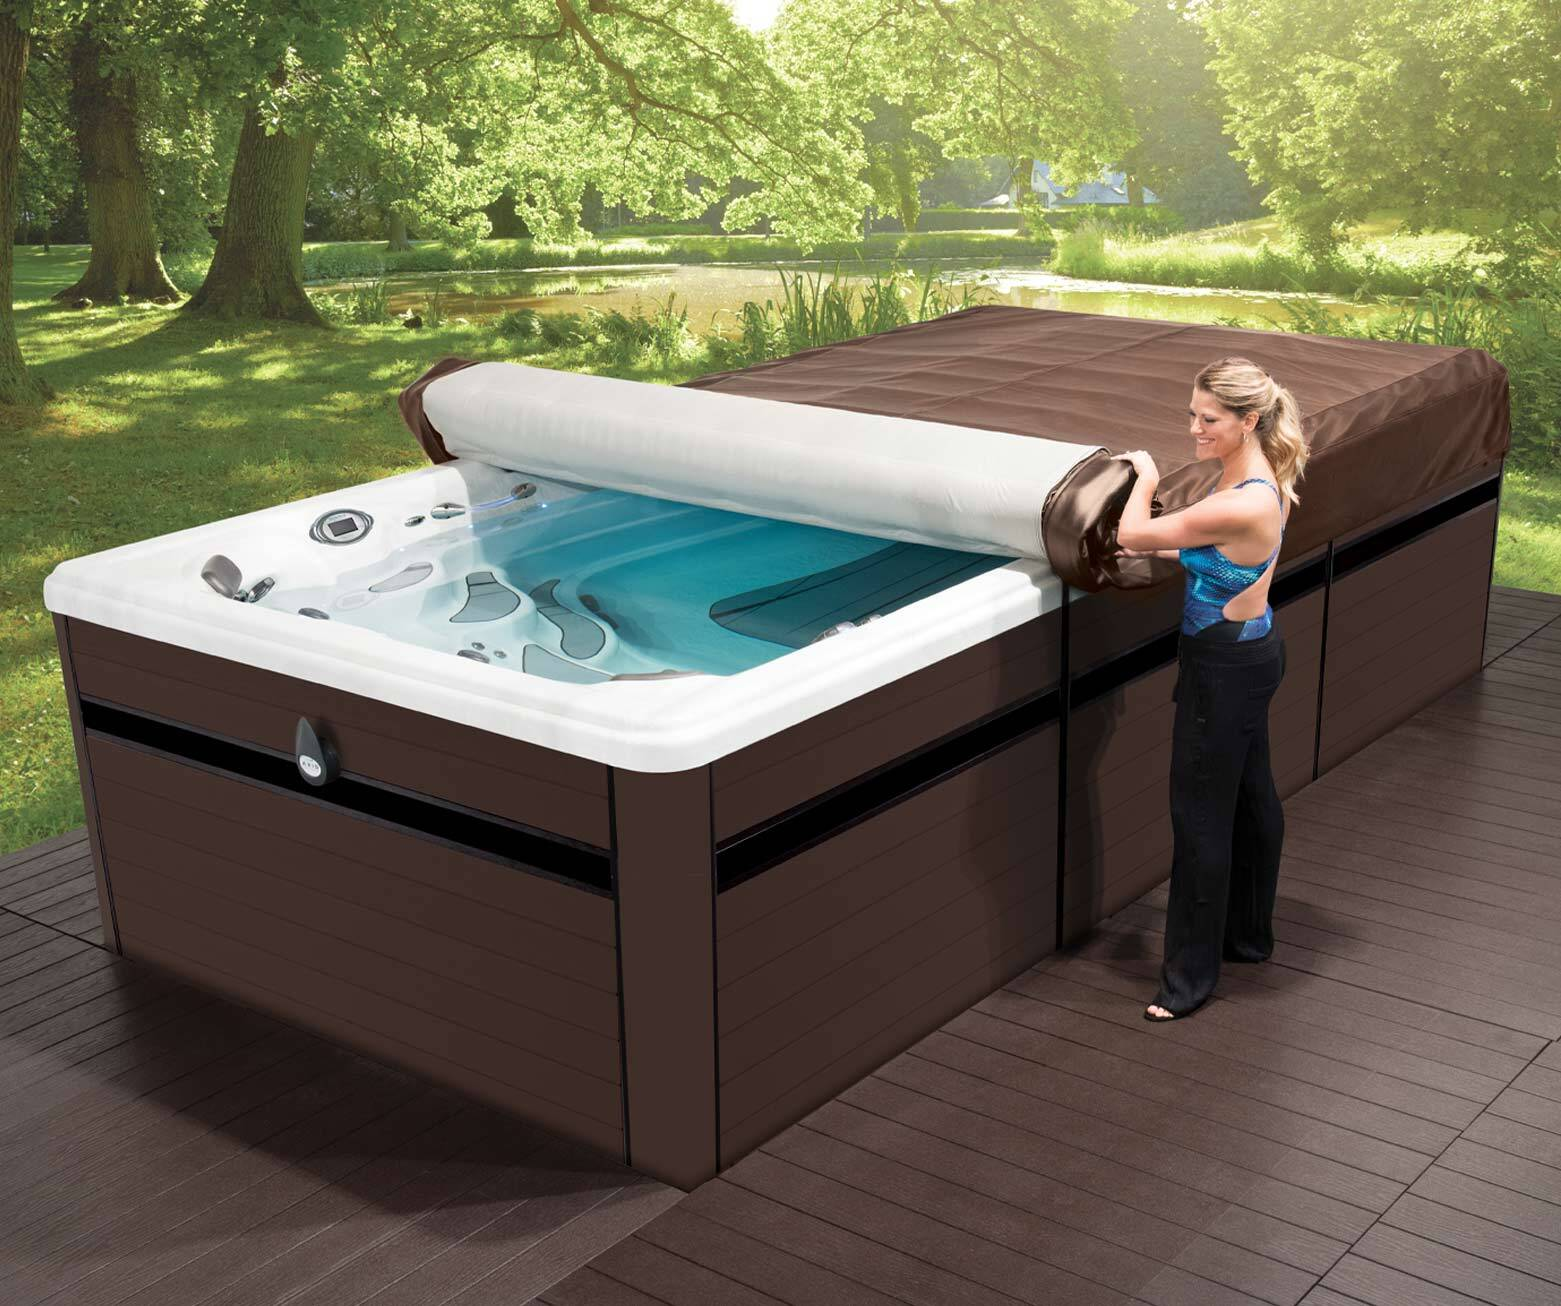 axis cover system easily unrolled on an h2x swim spa by master spas